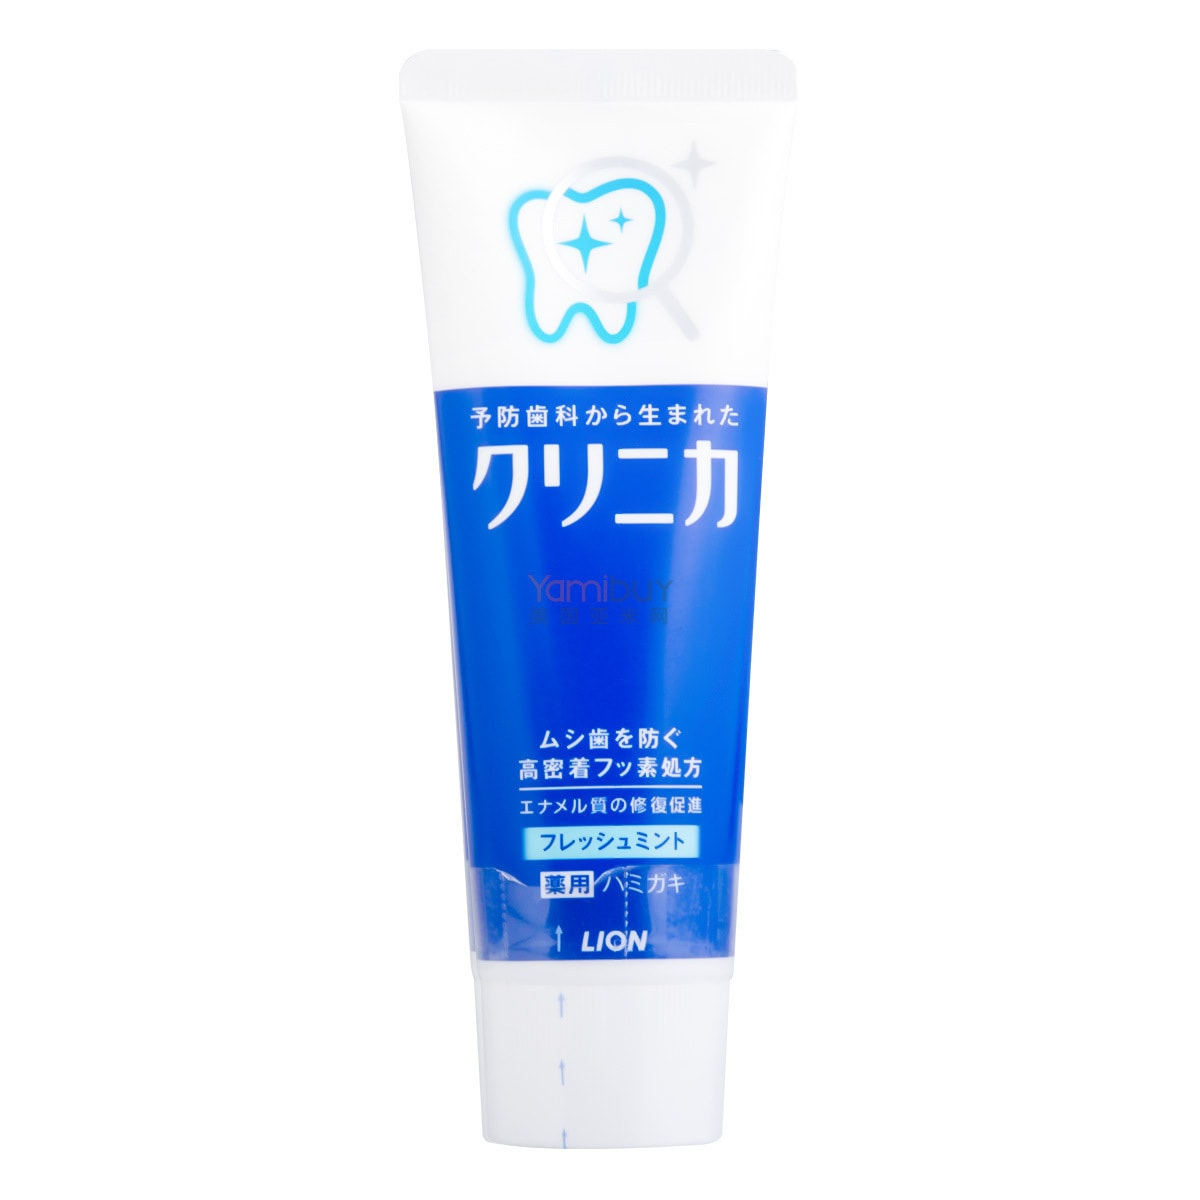 LION Clinica Fresh Mint Toothpaste 130g